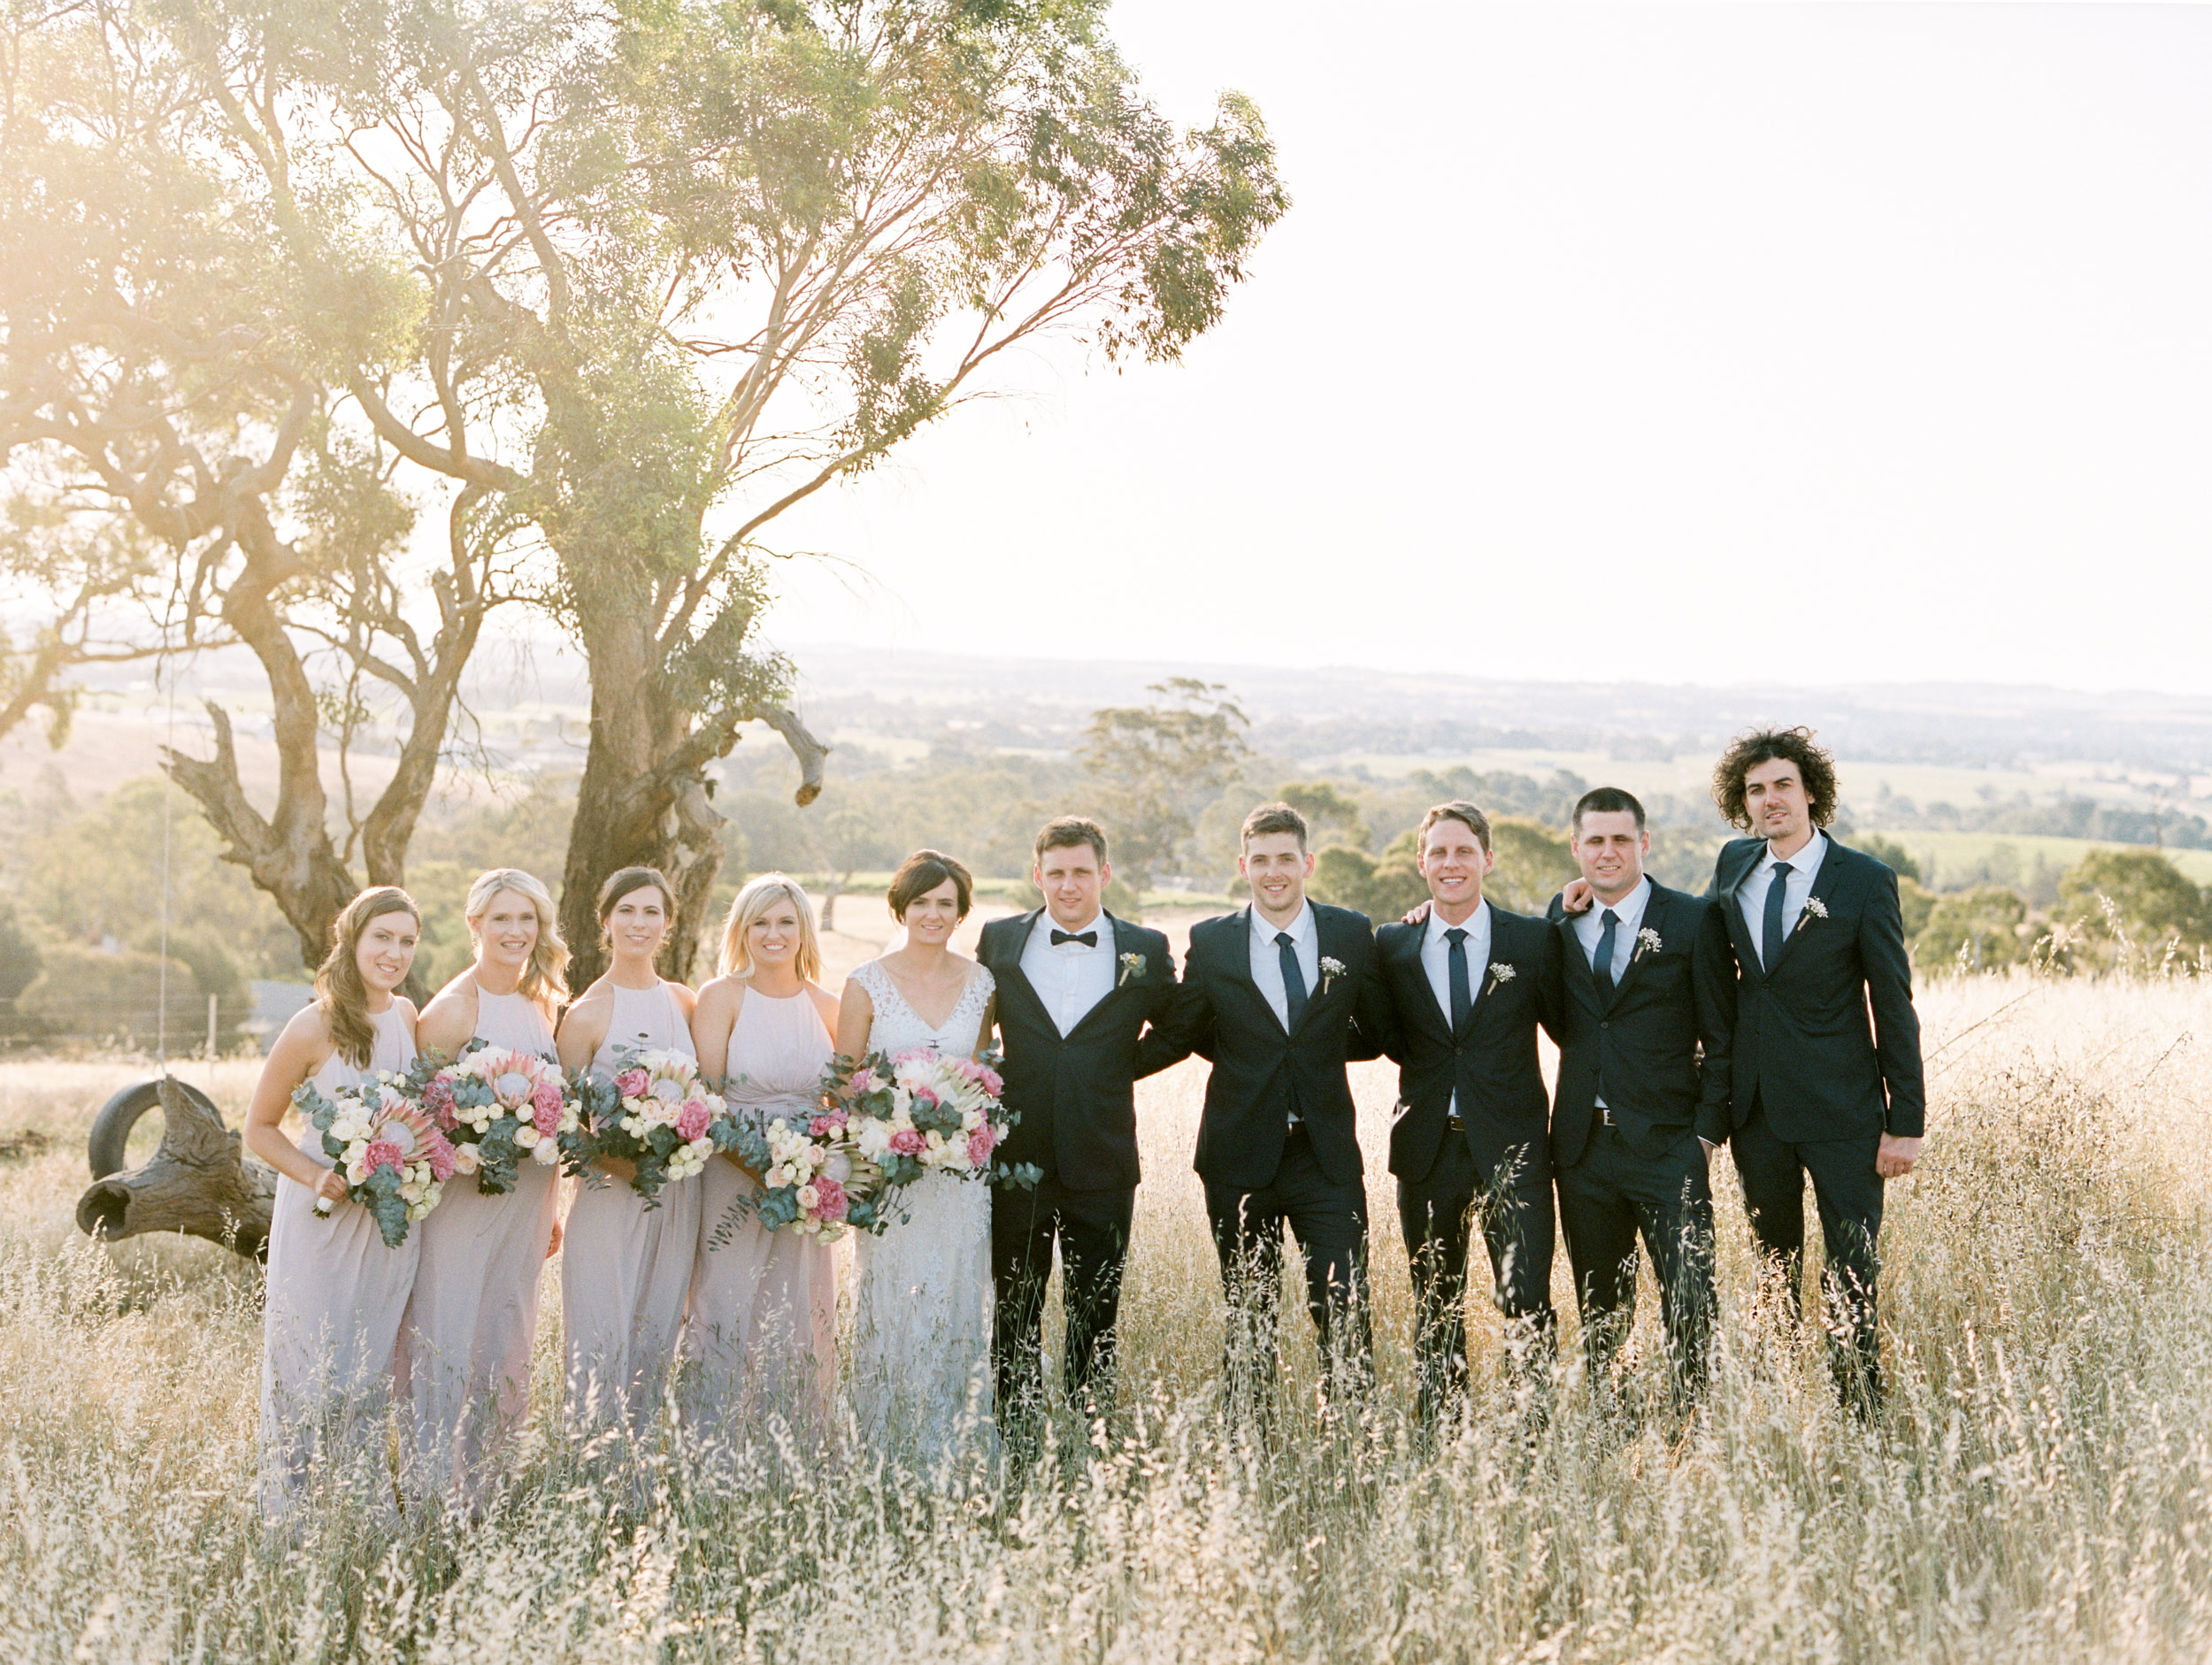 Union_Chapel_Barossa_Valley_Wedding-071.jpg